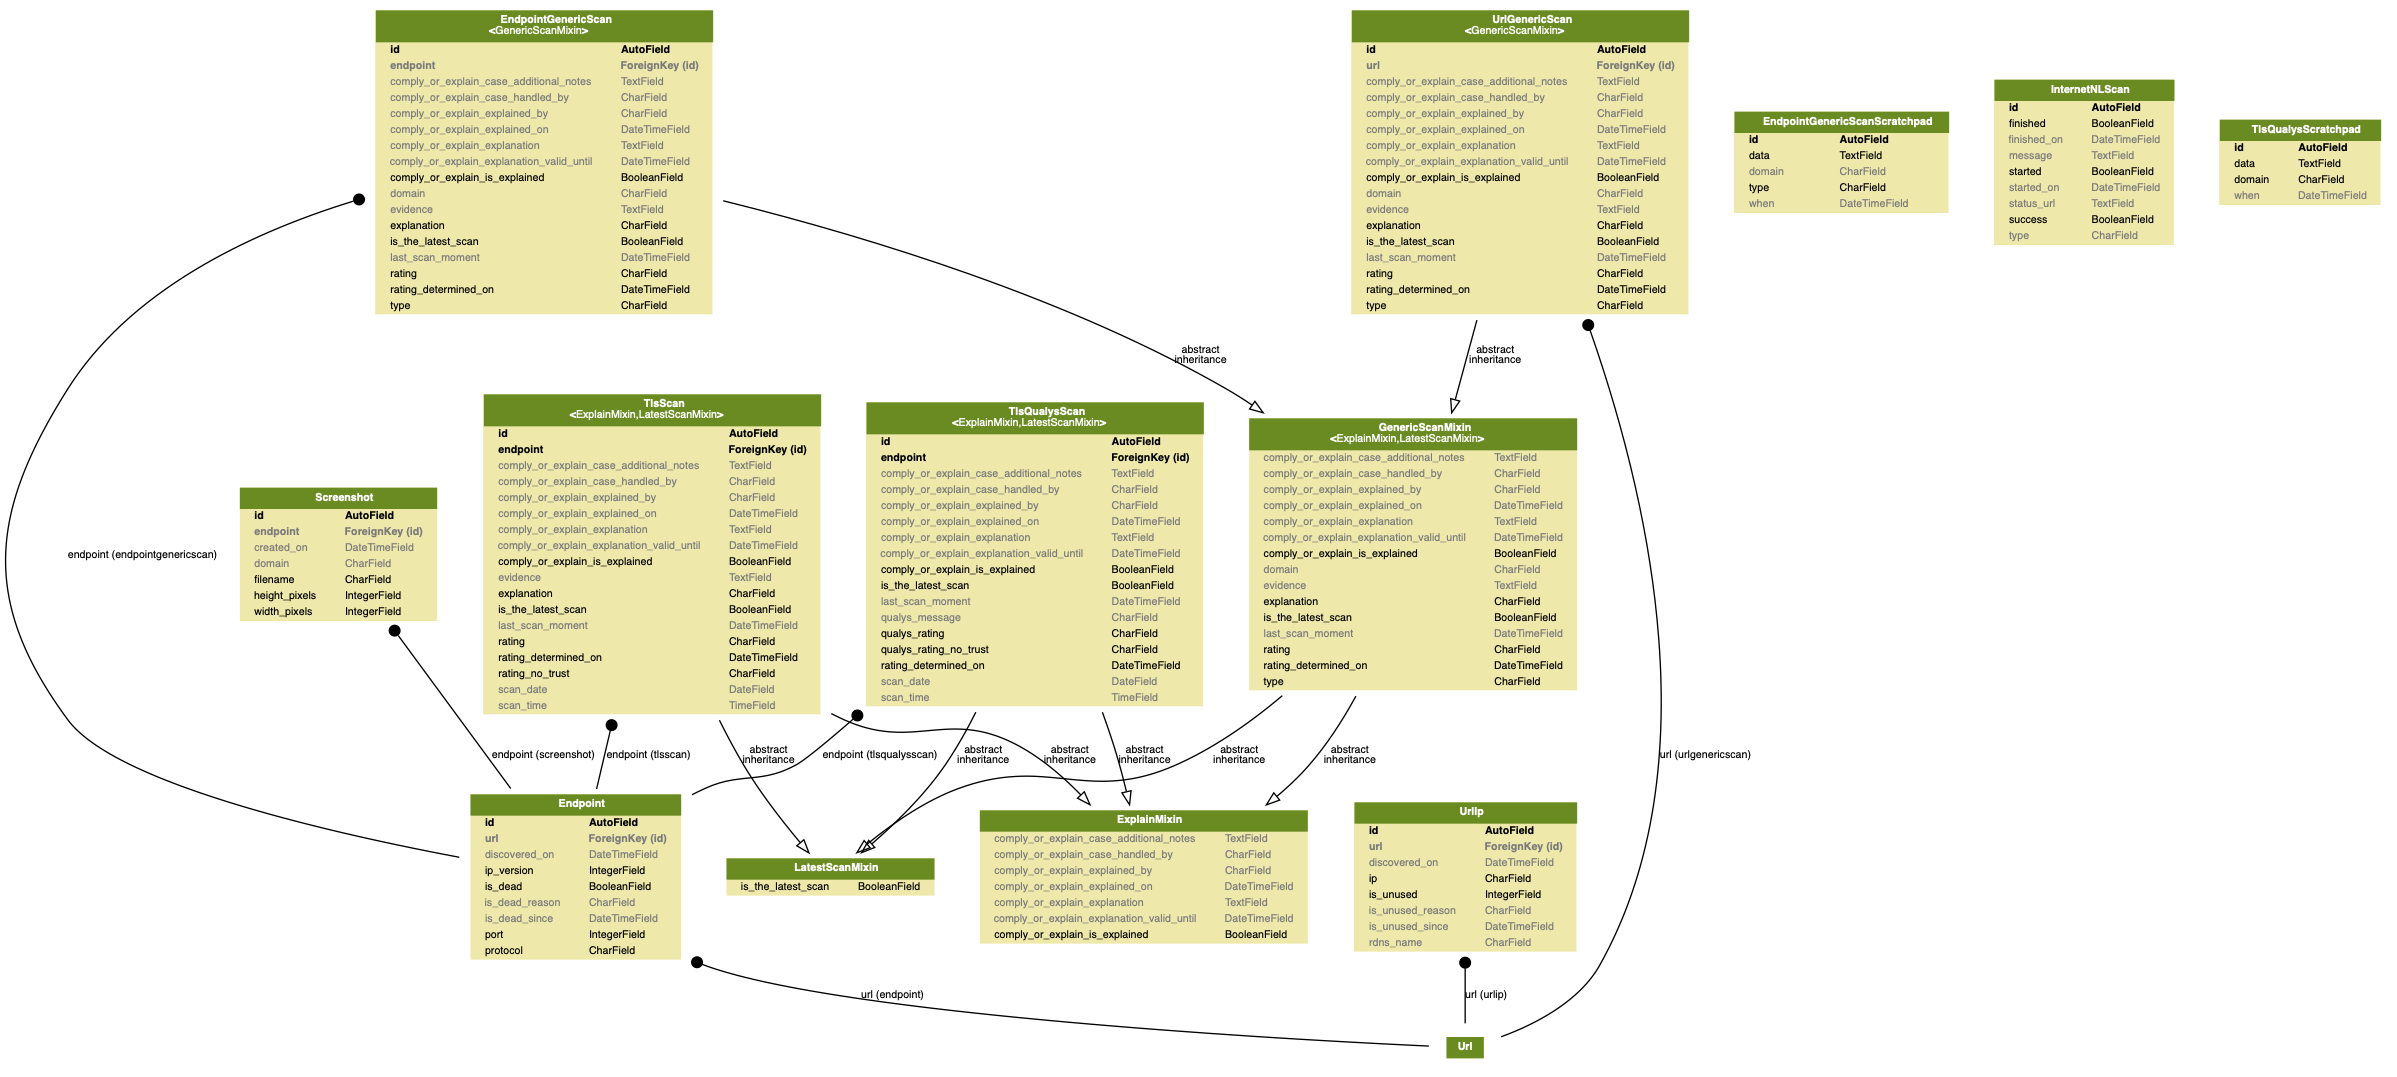 docs/source/topics/development/data_model/scanners_models.png